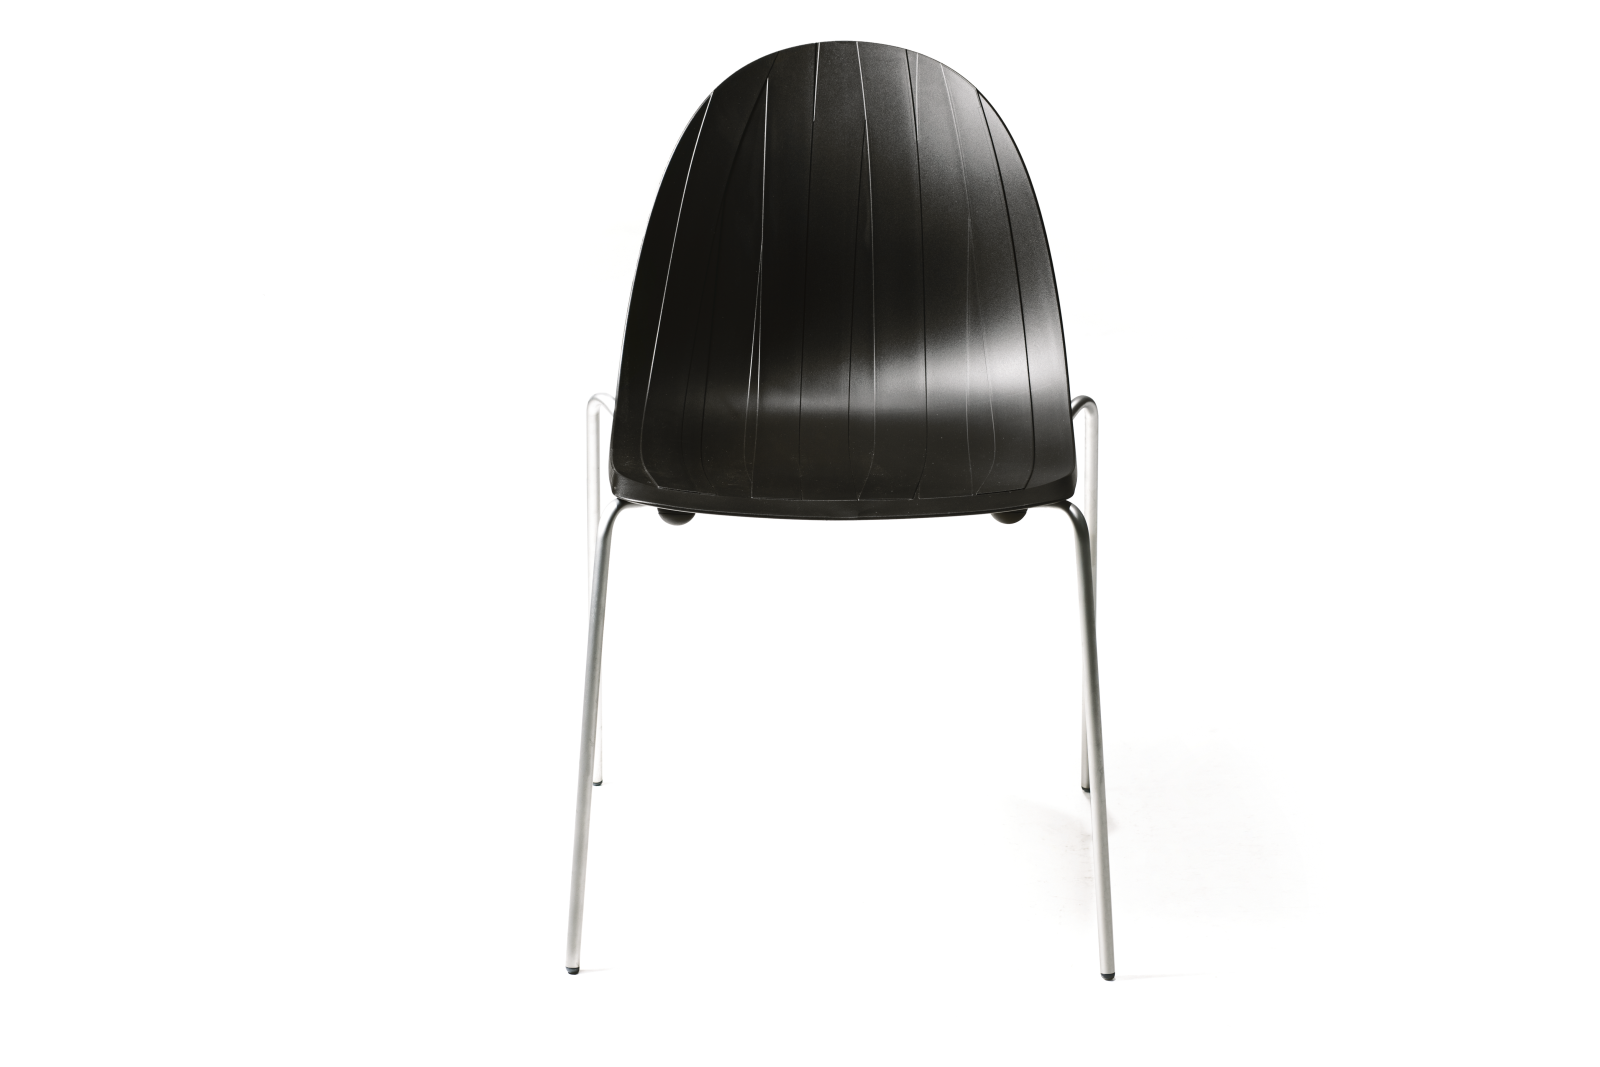 Impossible Wood Dining Chair Black Shell, Stainless Steel Base